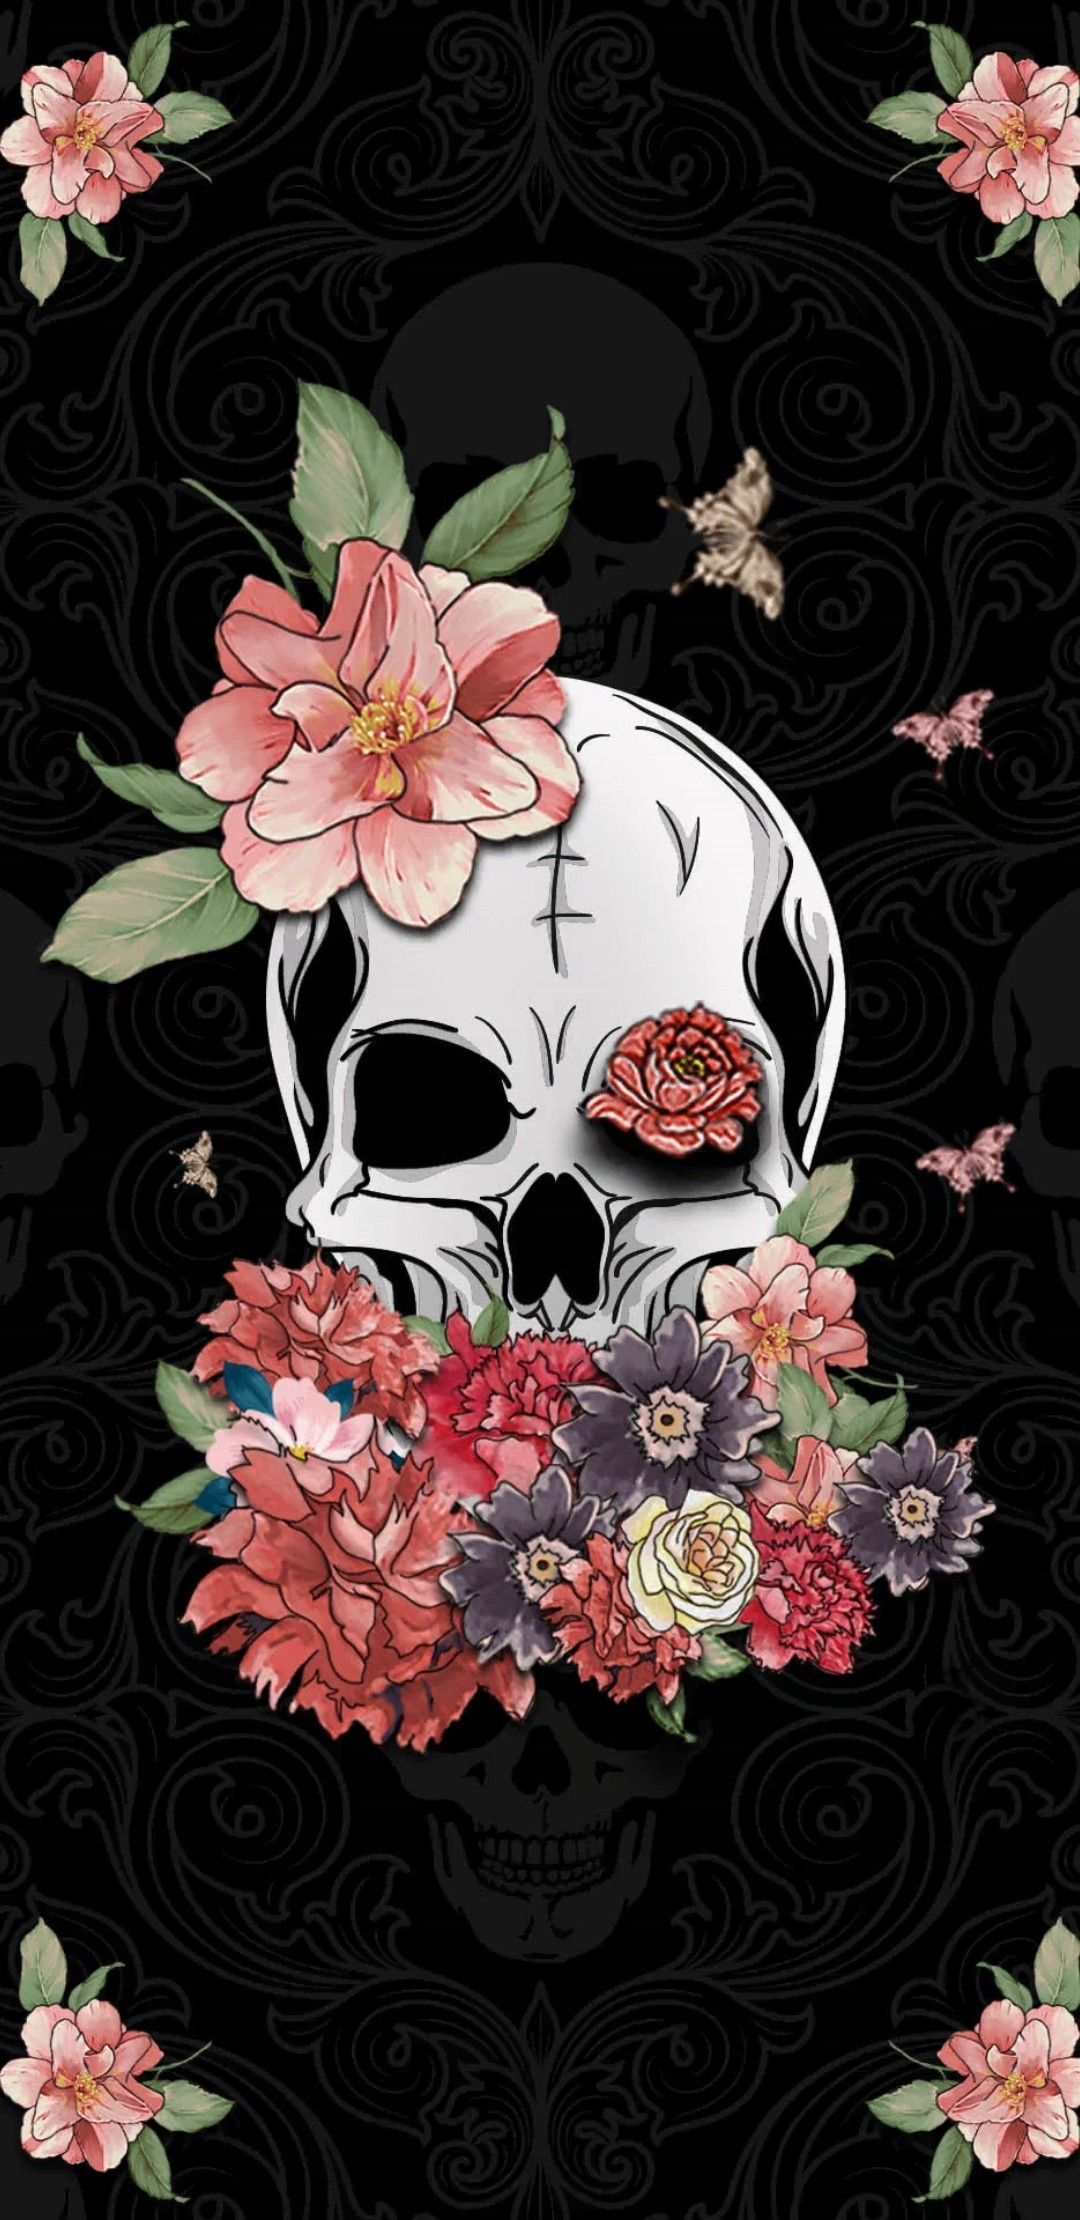 Floral Skull Wallpapers Top Free Floral Skull Backgrounds